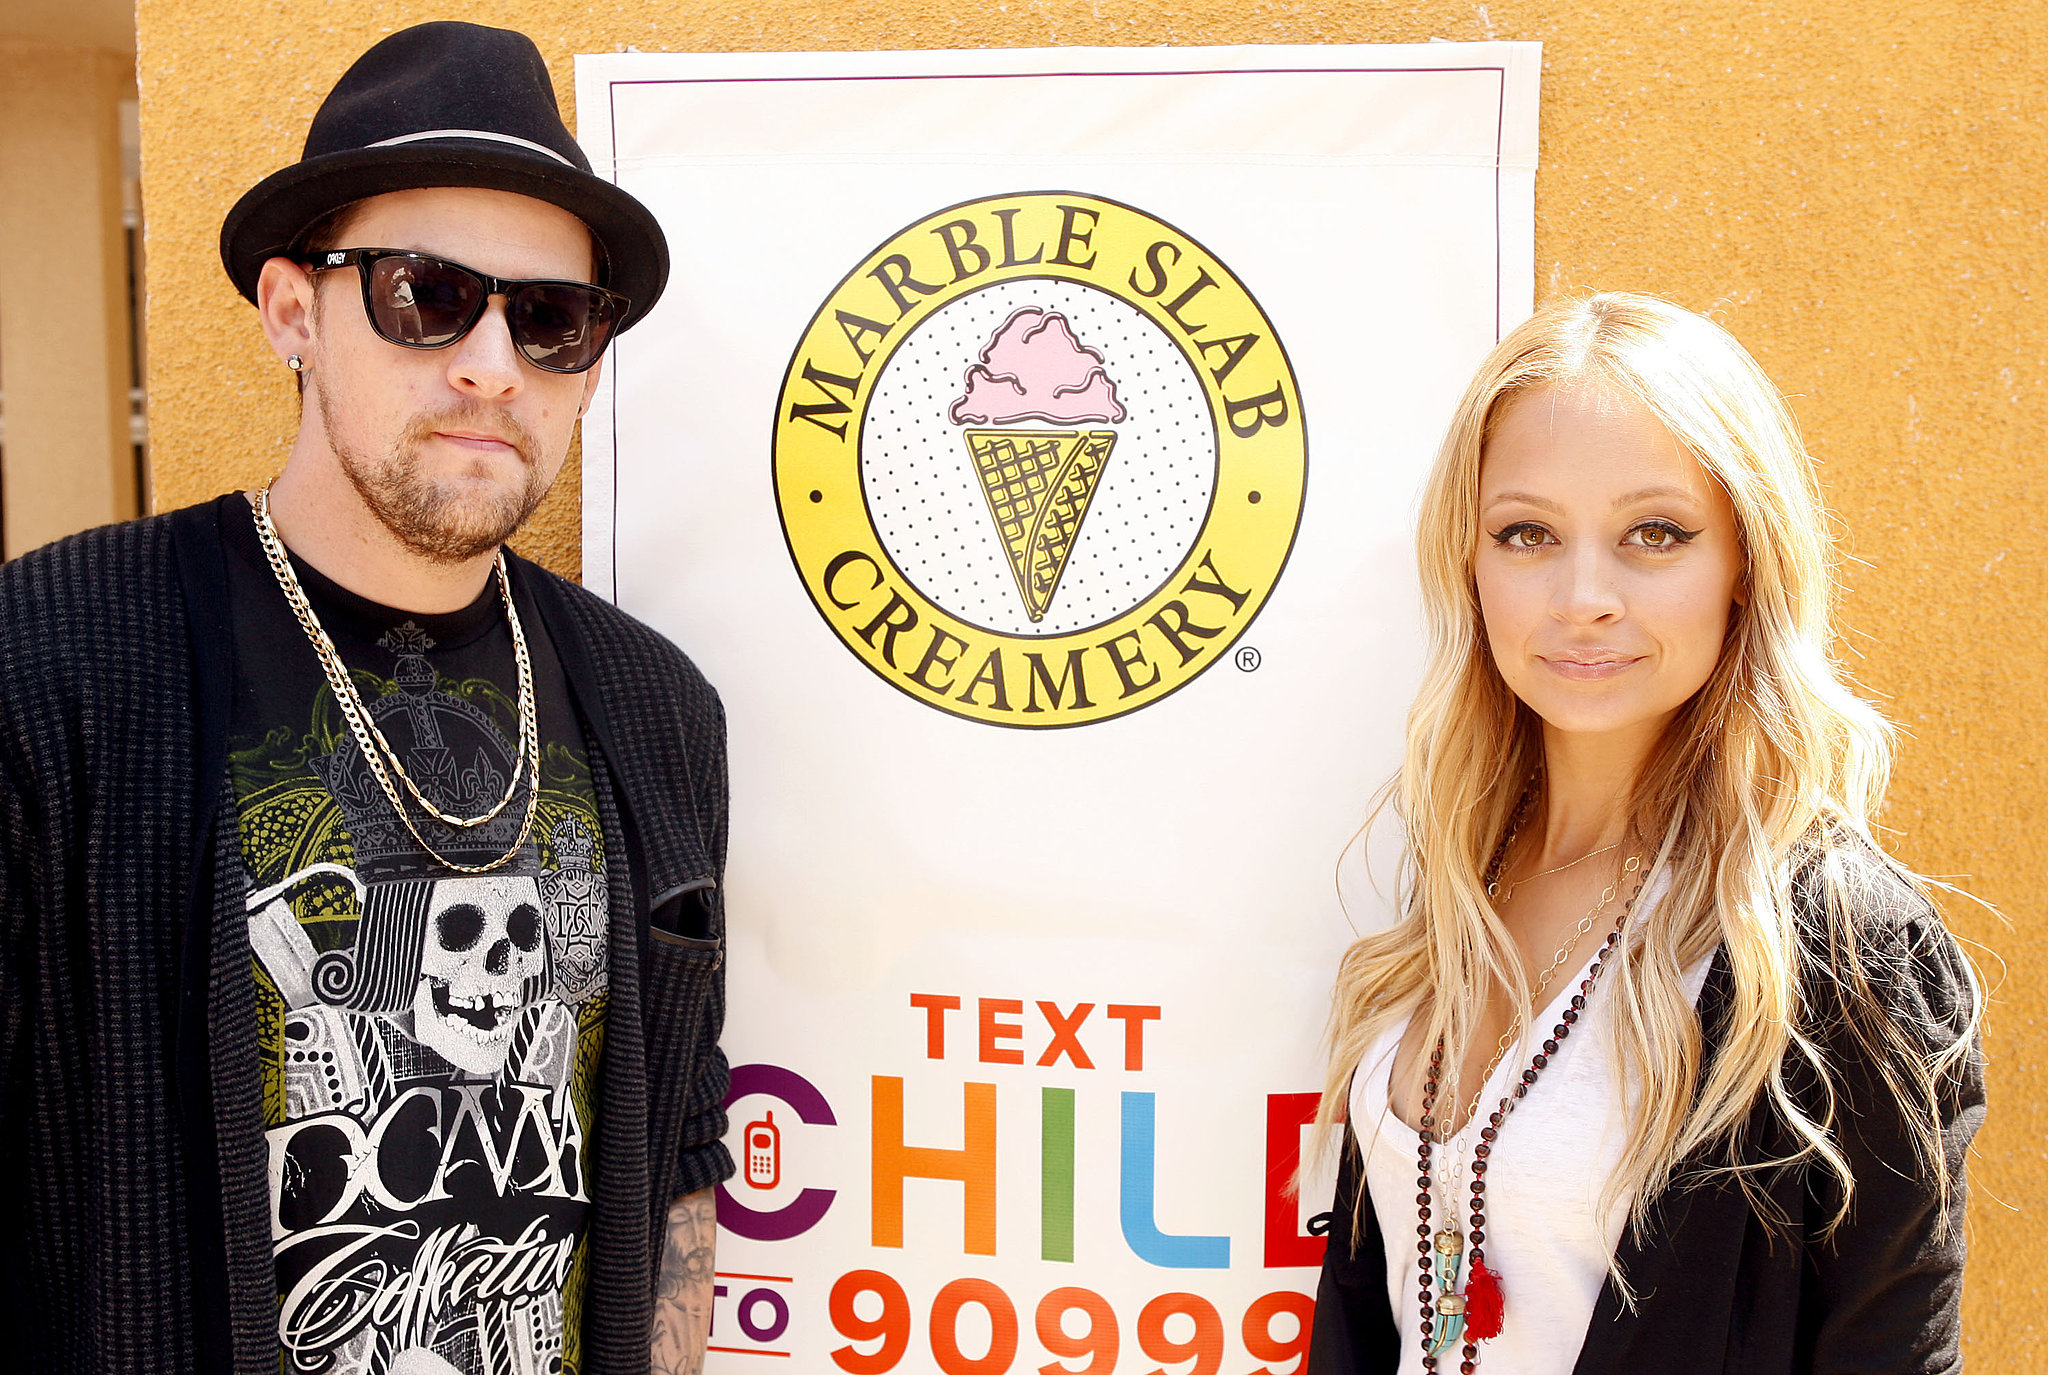 Nicole Richie and Joel Madden launched another children's charity initiative together in September 2008.